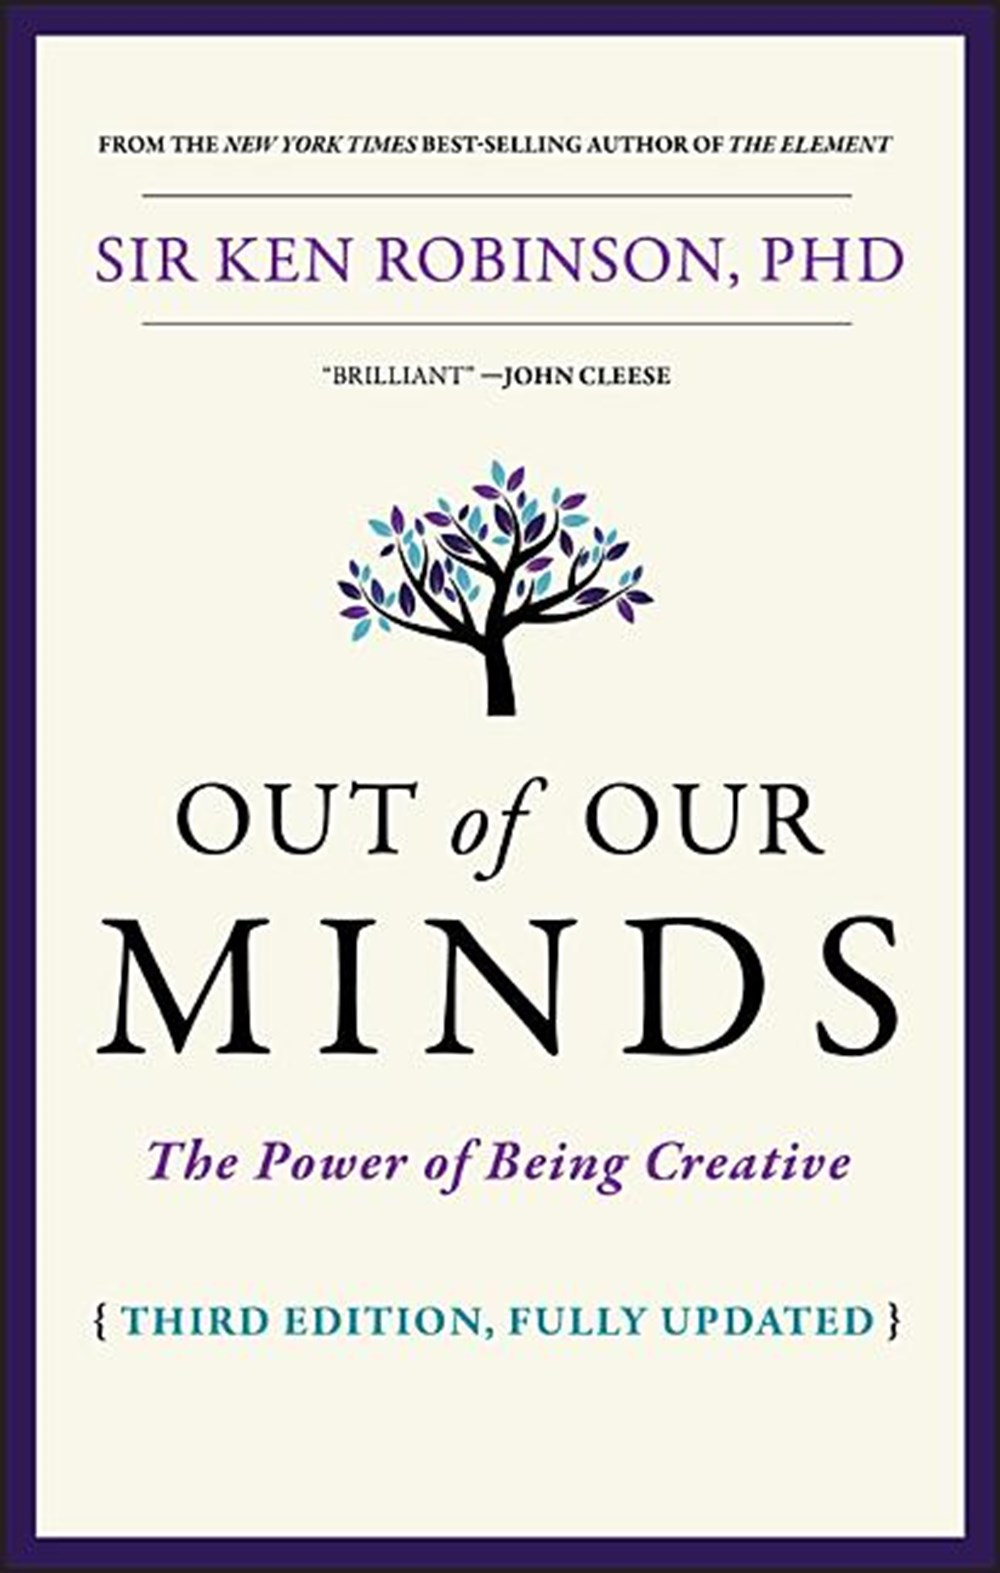 Out of Our Minds The Power of Being Creative